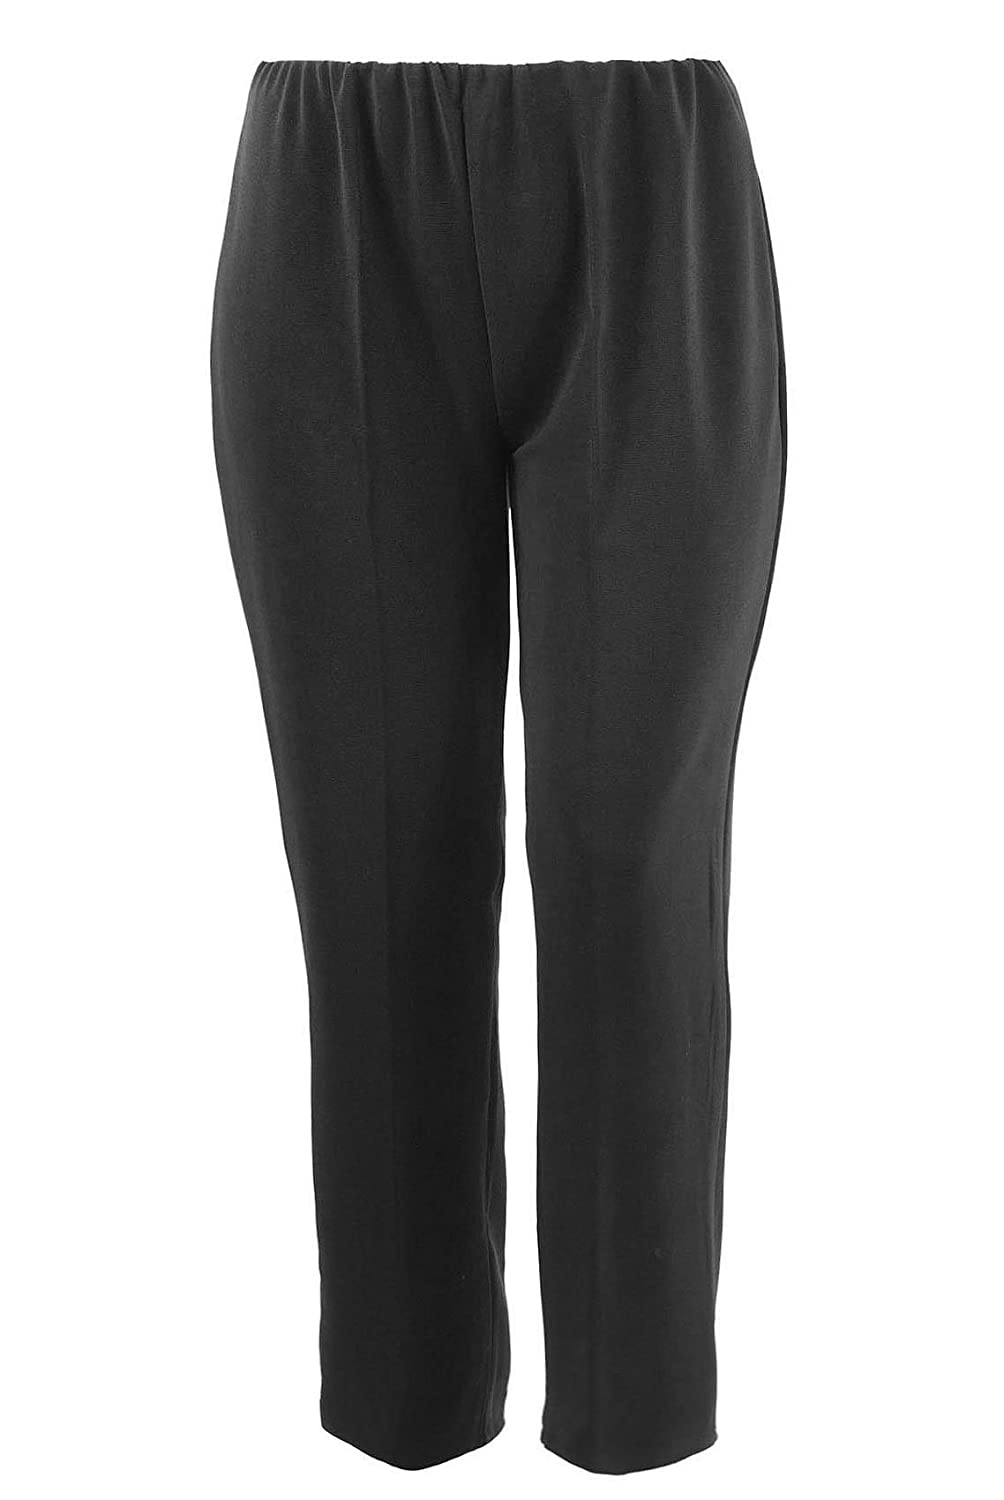 e0db8ffa7c284 Yours Clothing Women s Plus Size Pull On Ribbed Bootcut Trousers   Amazon.co.uk  Clothing